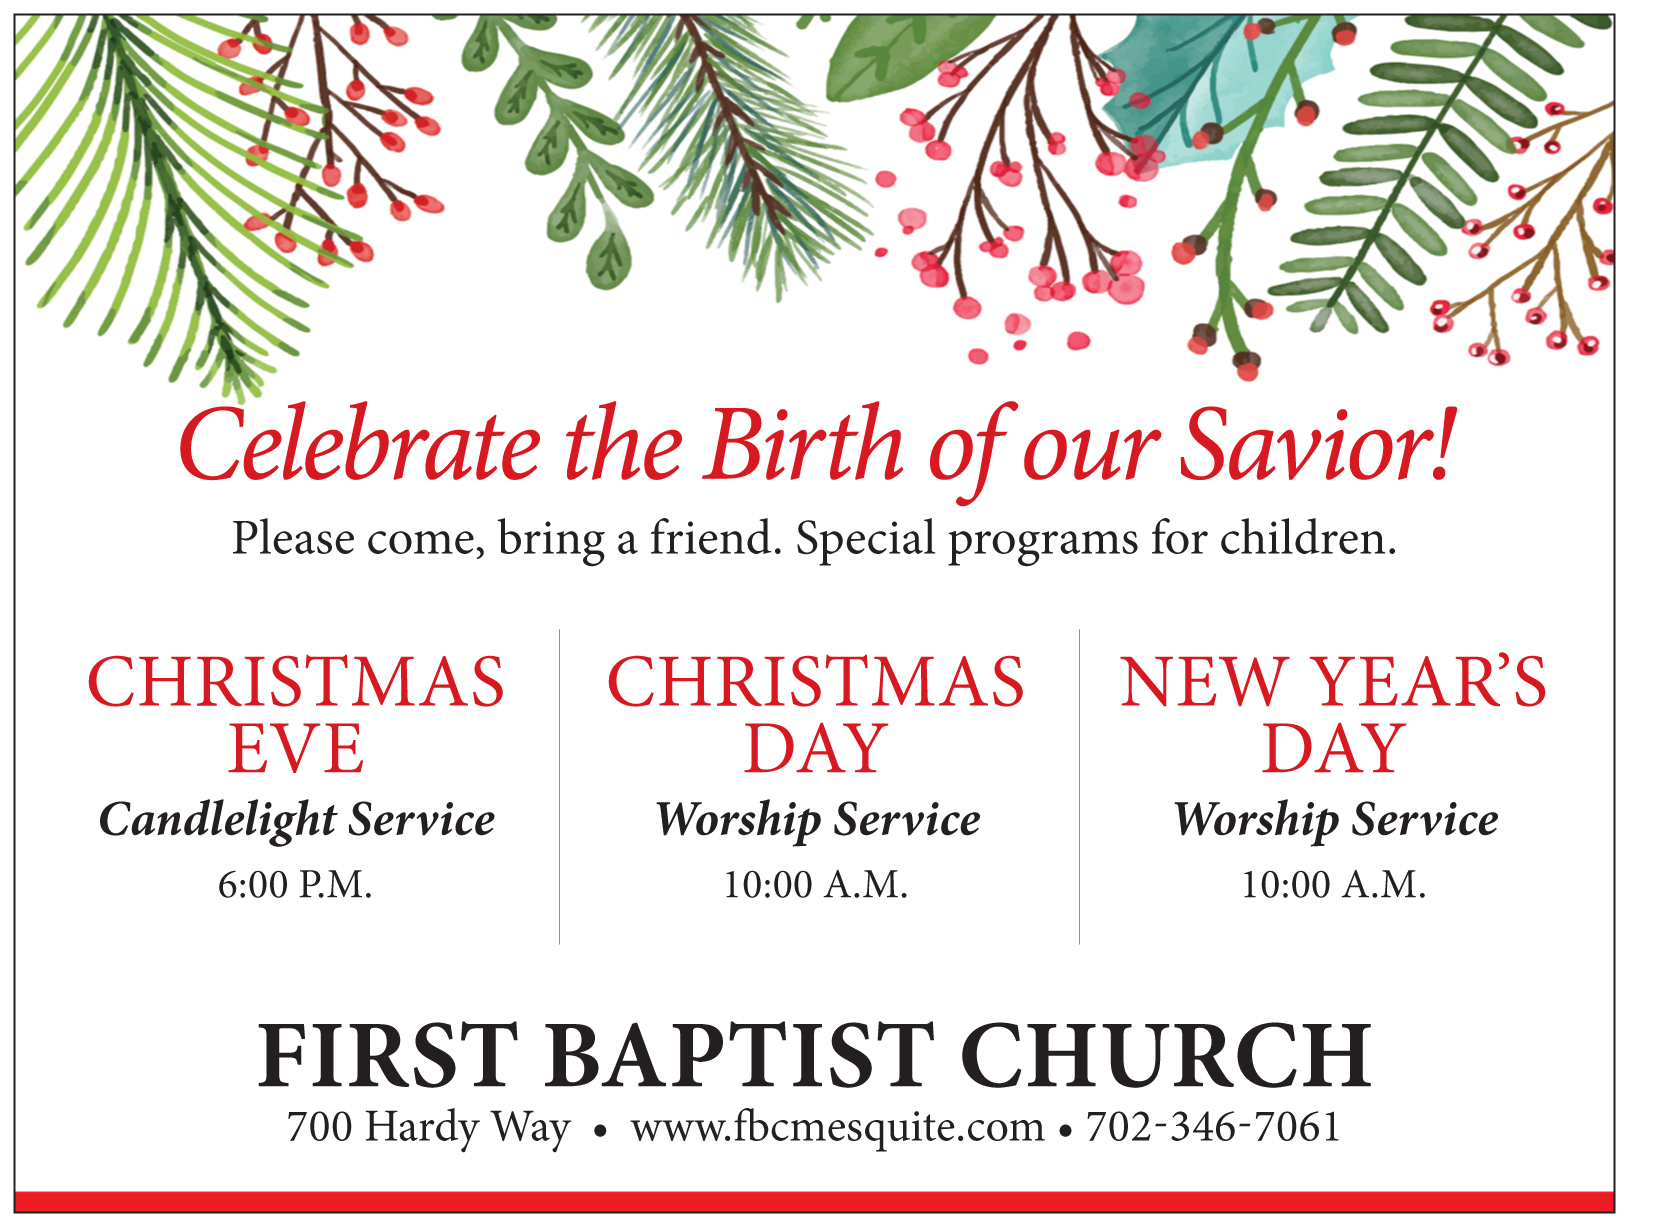 First Baptist Church Christmas Services